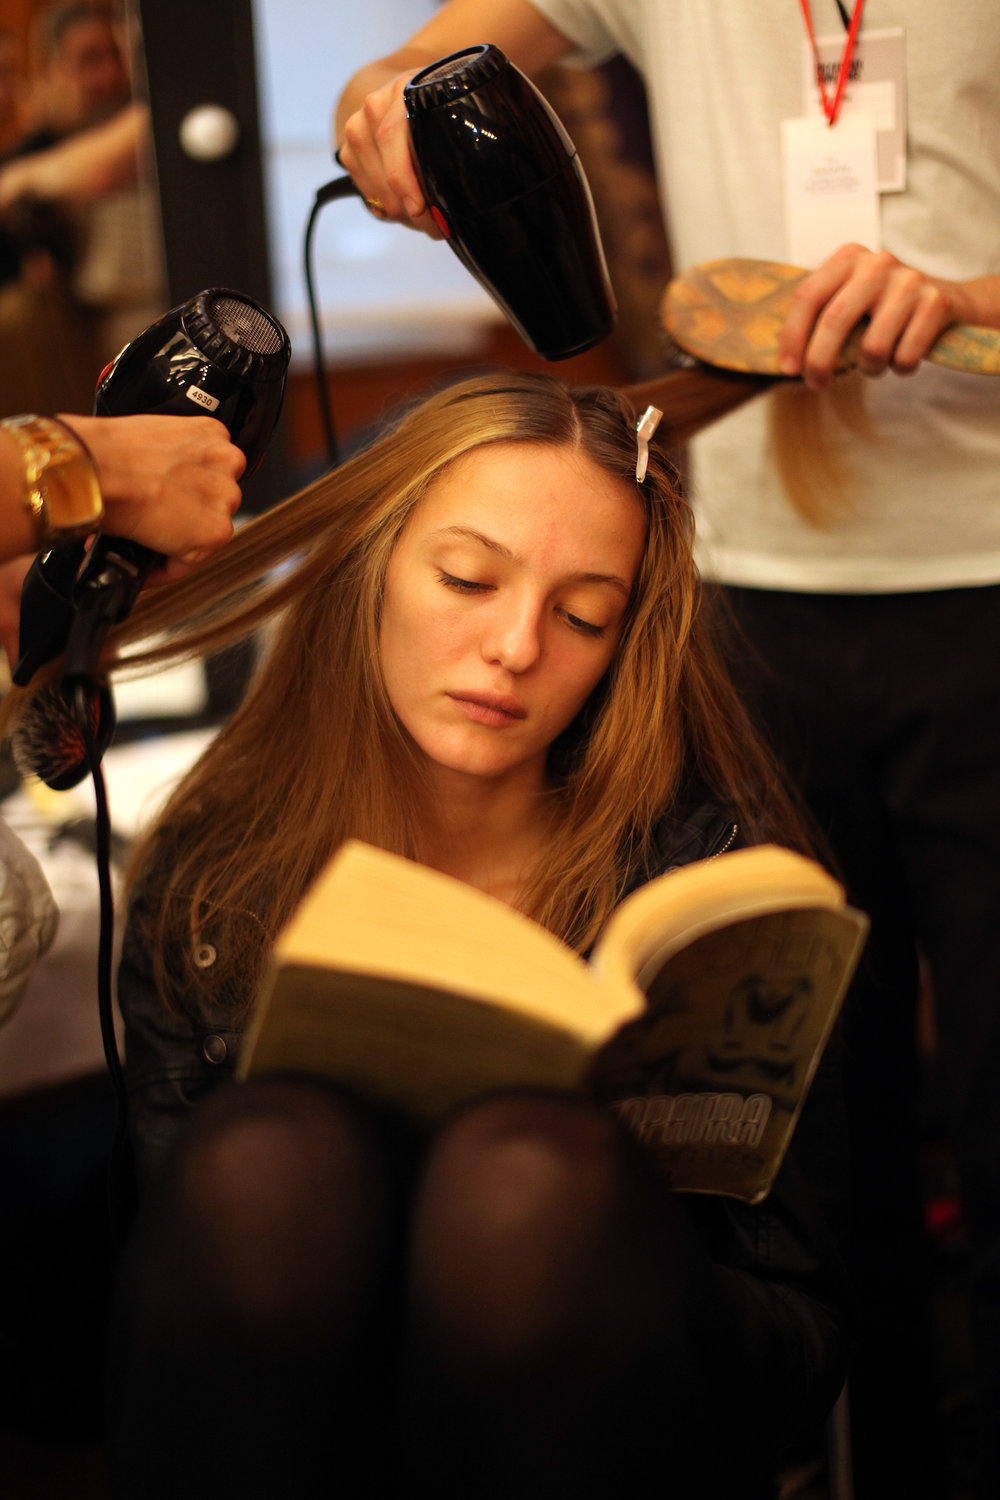 A model backstage at London Fashion Week squeezes in some reading time before a catwalk show.  Pic: Katie Collins/PA images